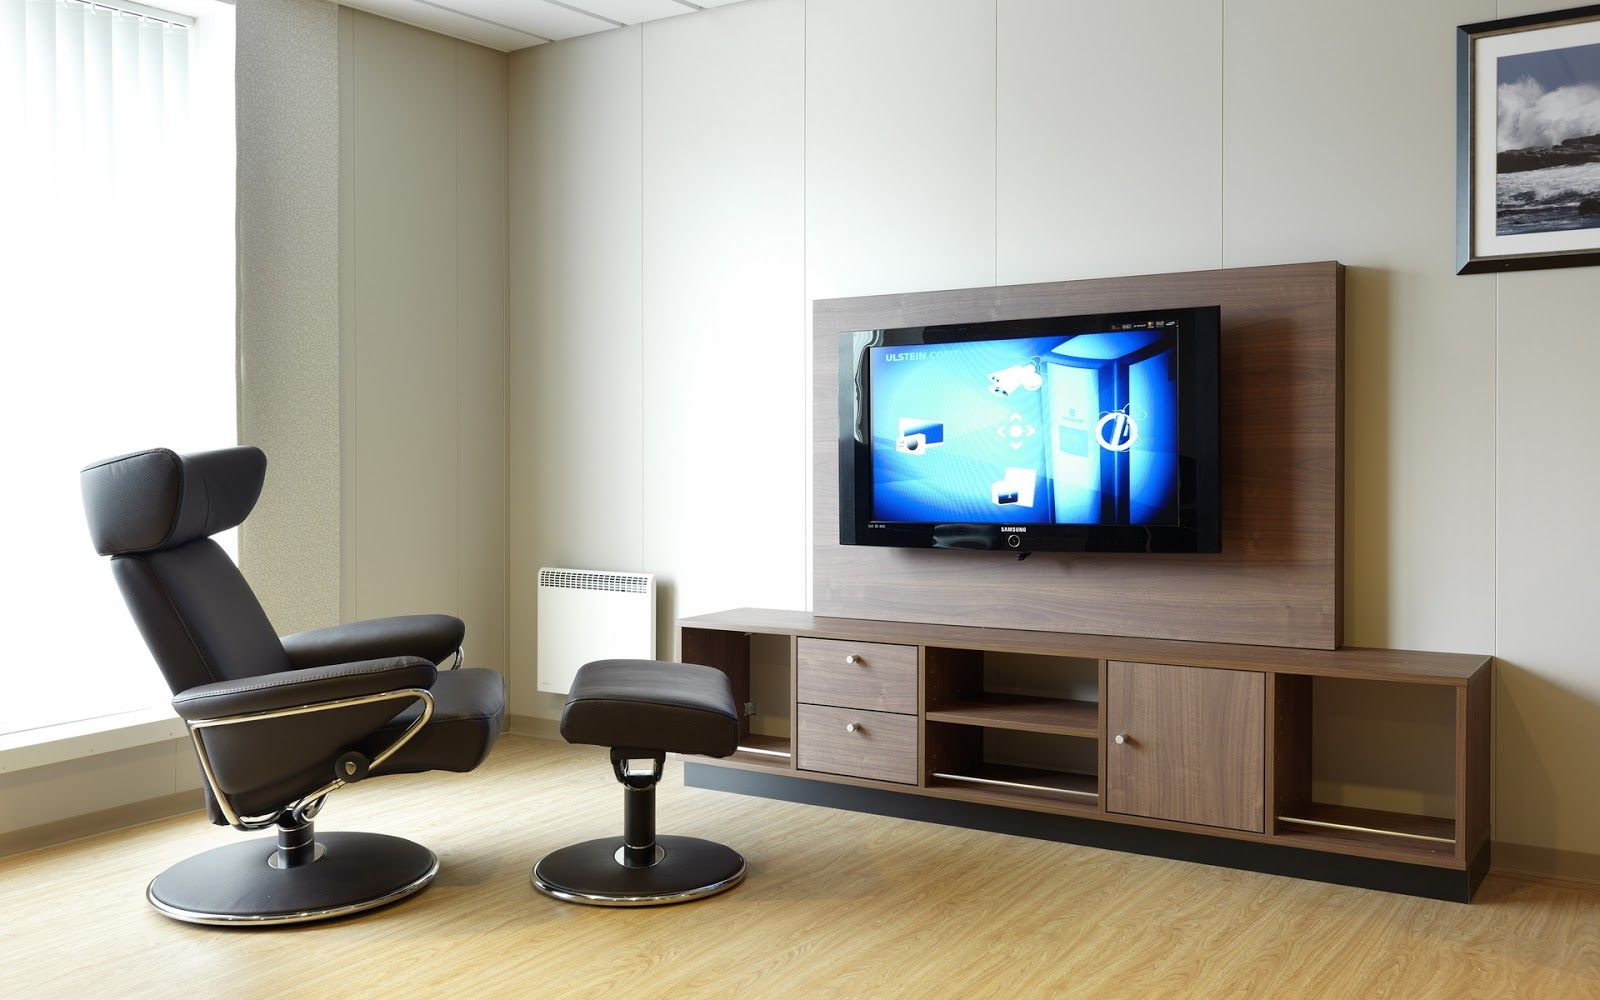 Sexy wallpaper interior design fresh hd wallpapers 2013 - Modern tv interior design ...